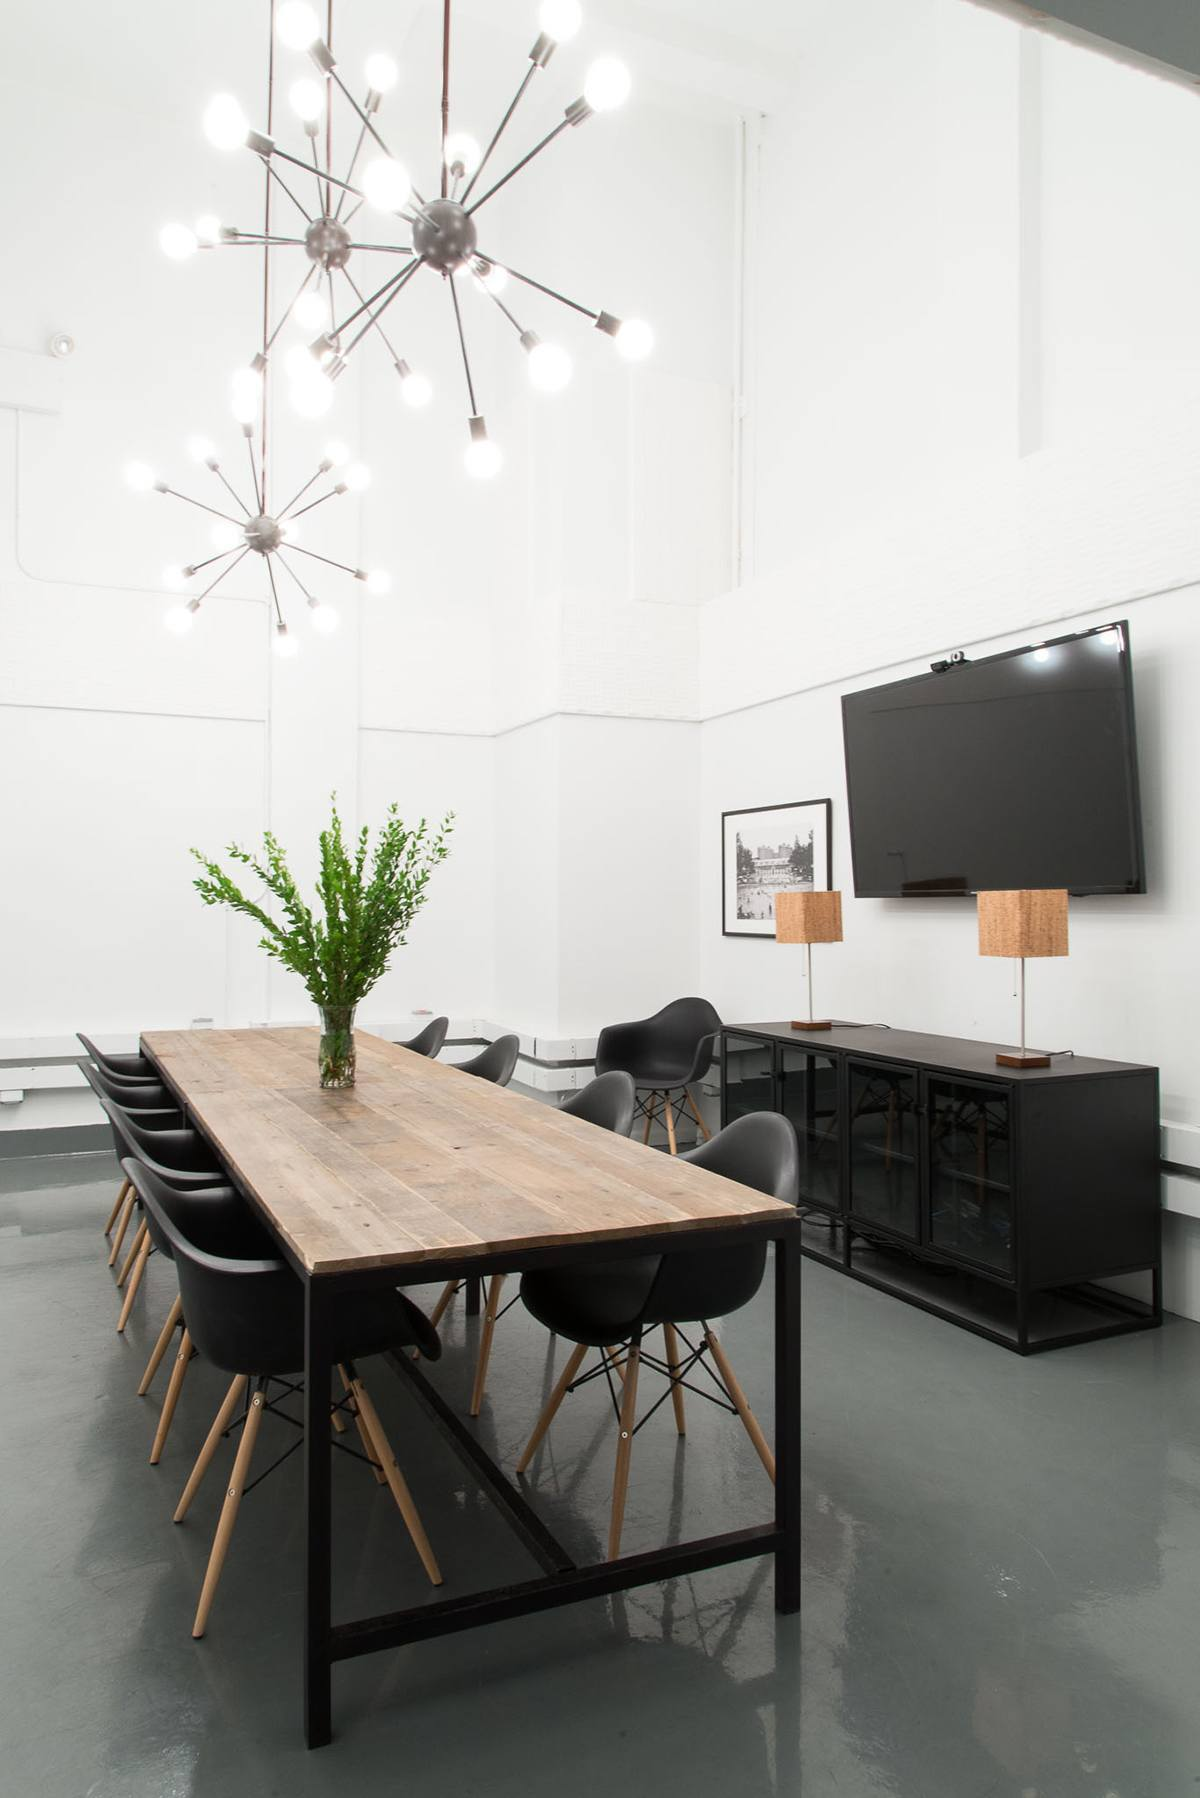 A Look Inside Bluecore's New NYC Office